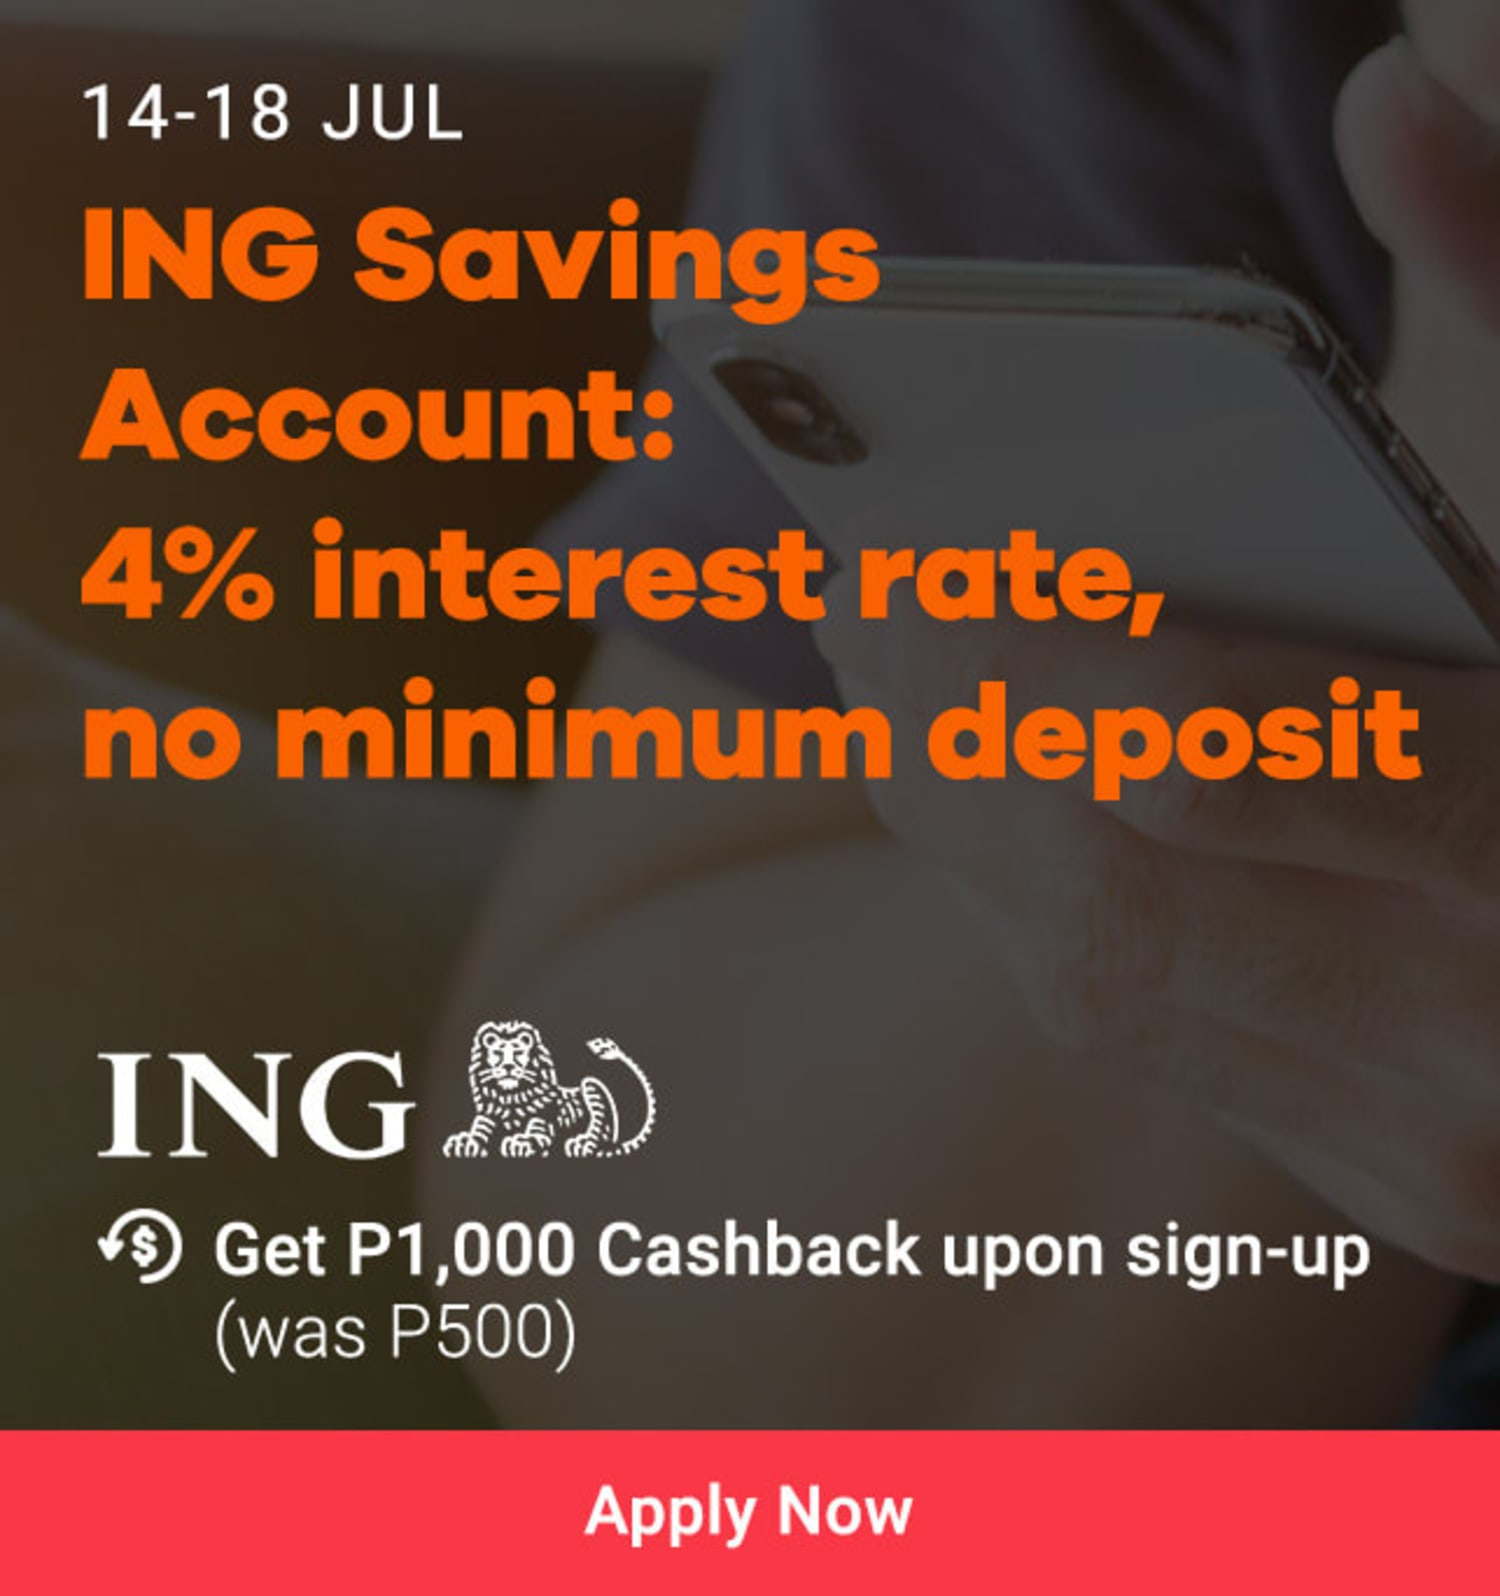 ING: 4% Interest Rate No Minimum Deposit